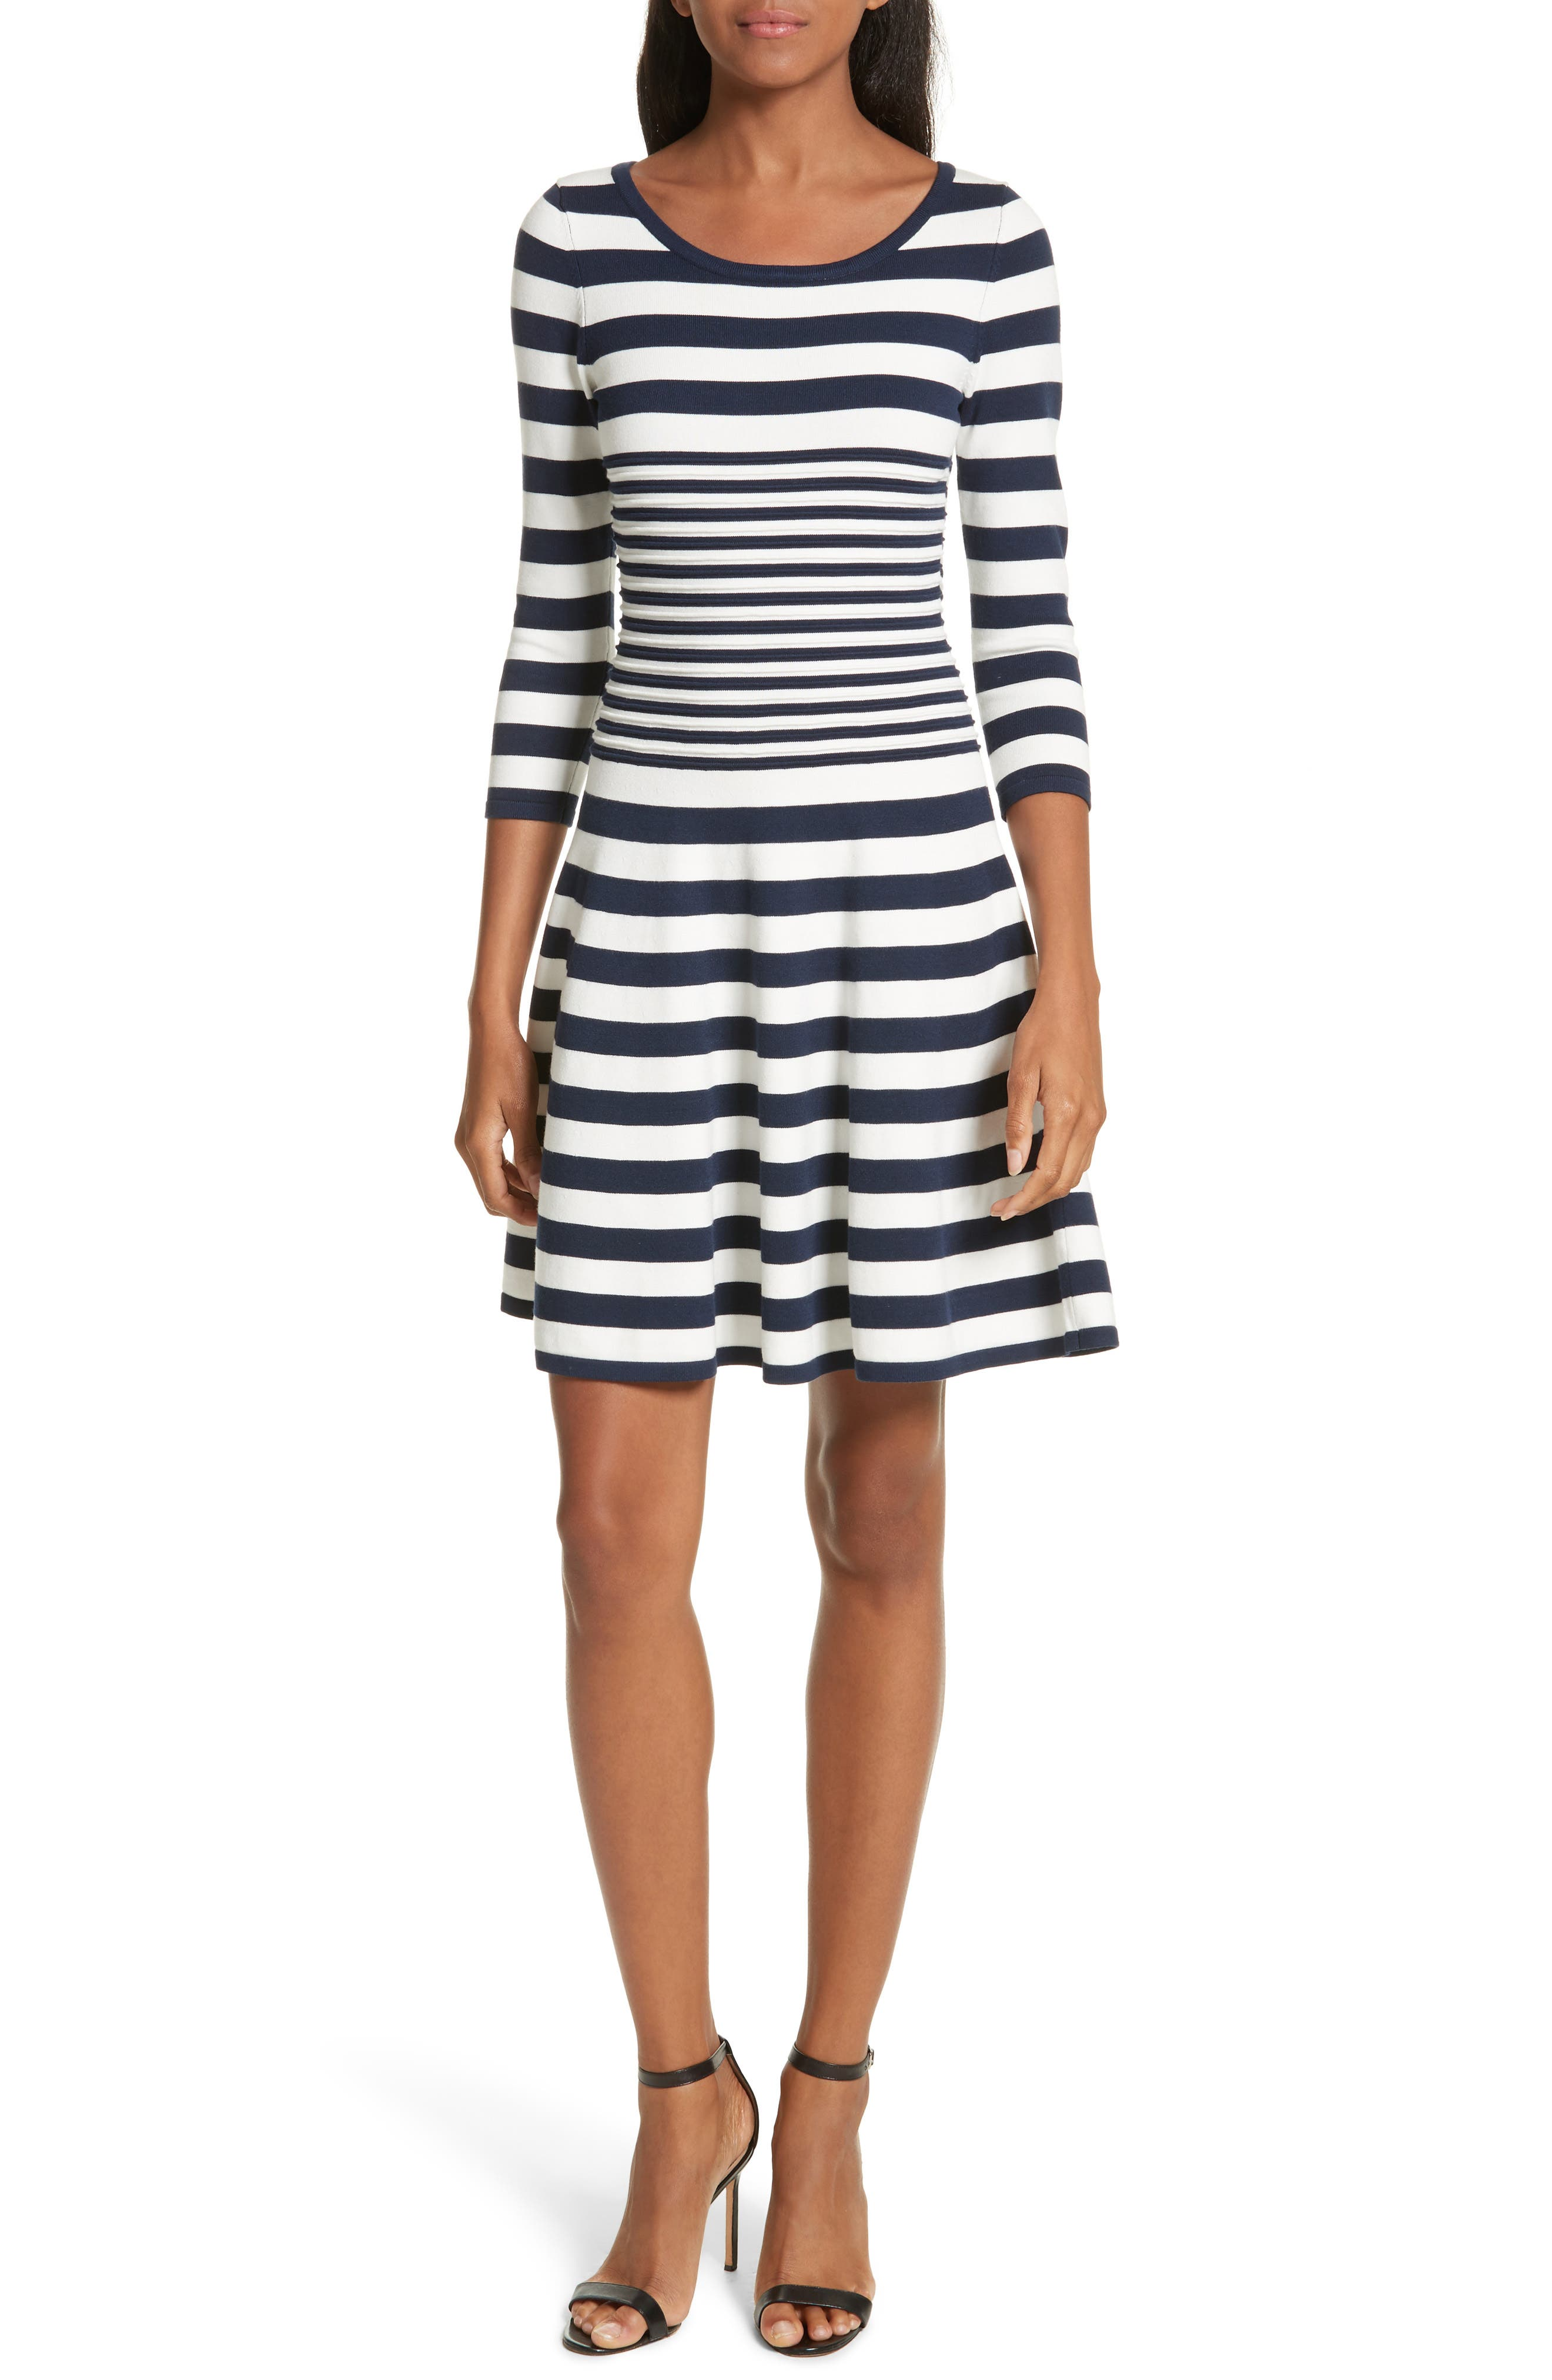 Alternate Image 1 Selected - Milly Striped Ottoman Fit & Flare Dress